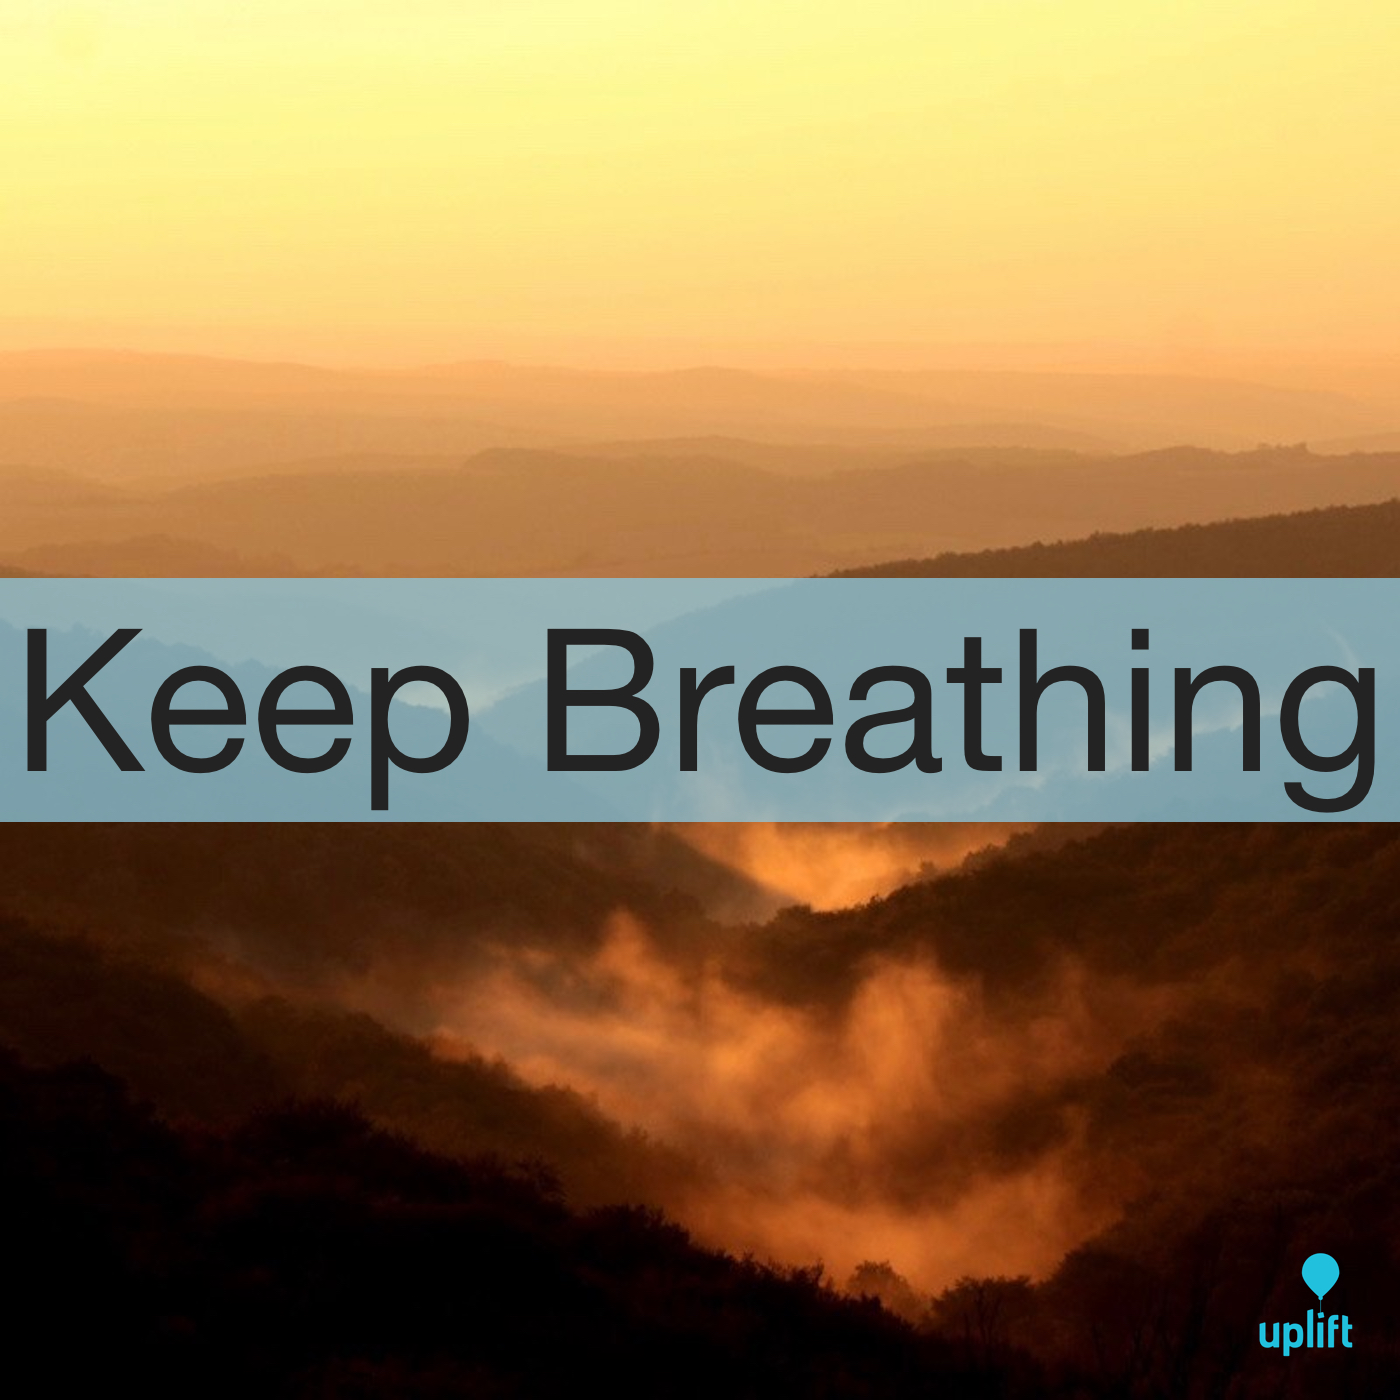 Episode 104: Keep Breathing